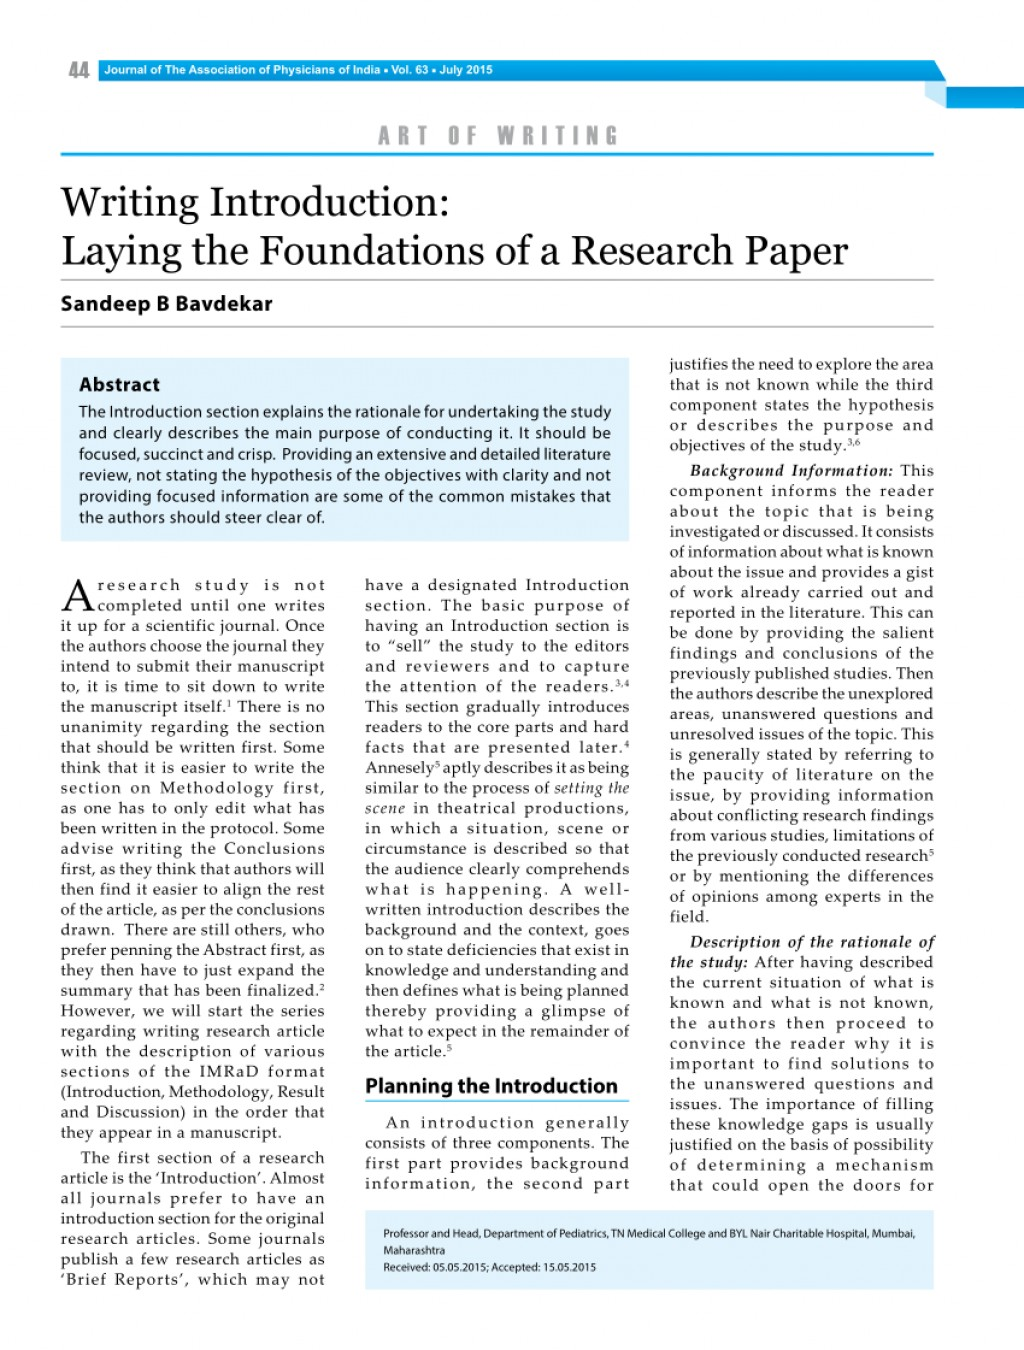 004 How To Begin Research Paper Introduction Best Make An In Pdf Start A Paragraph History Large